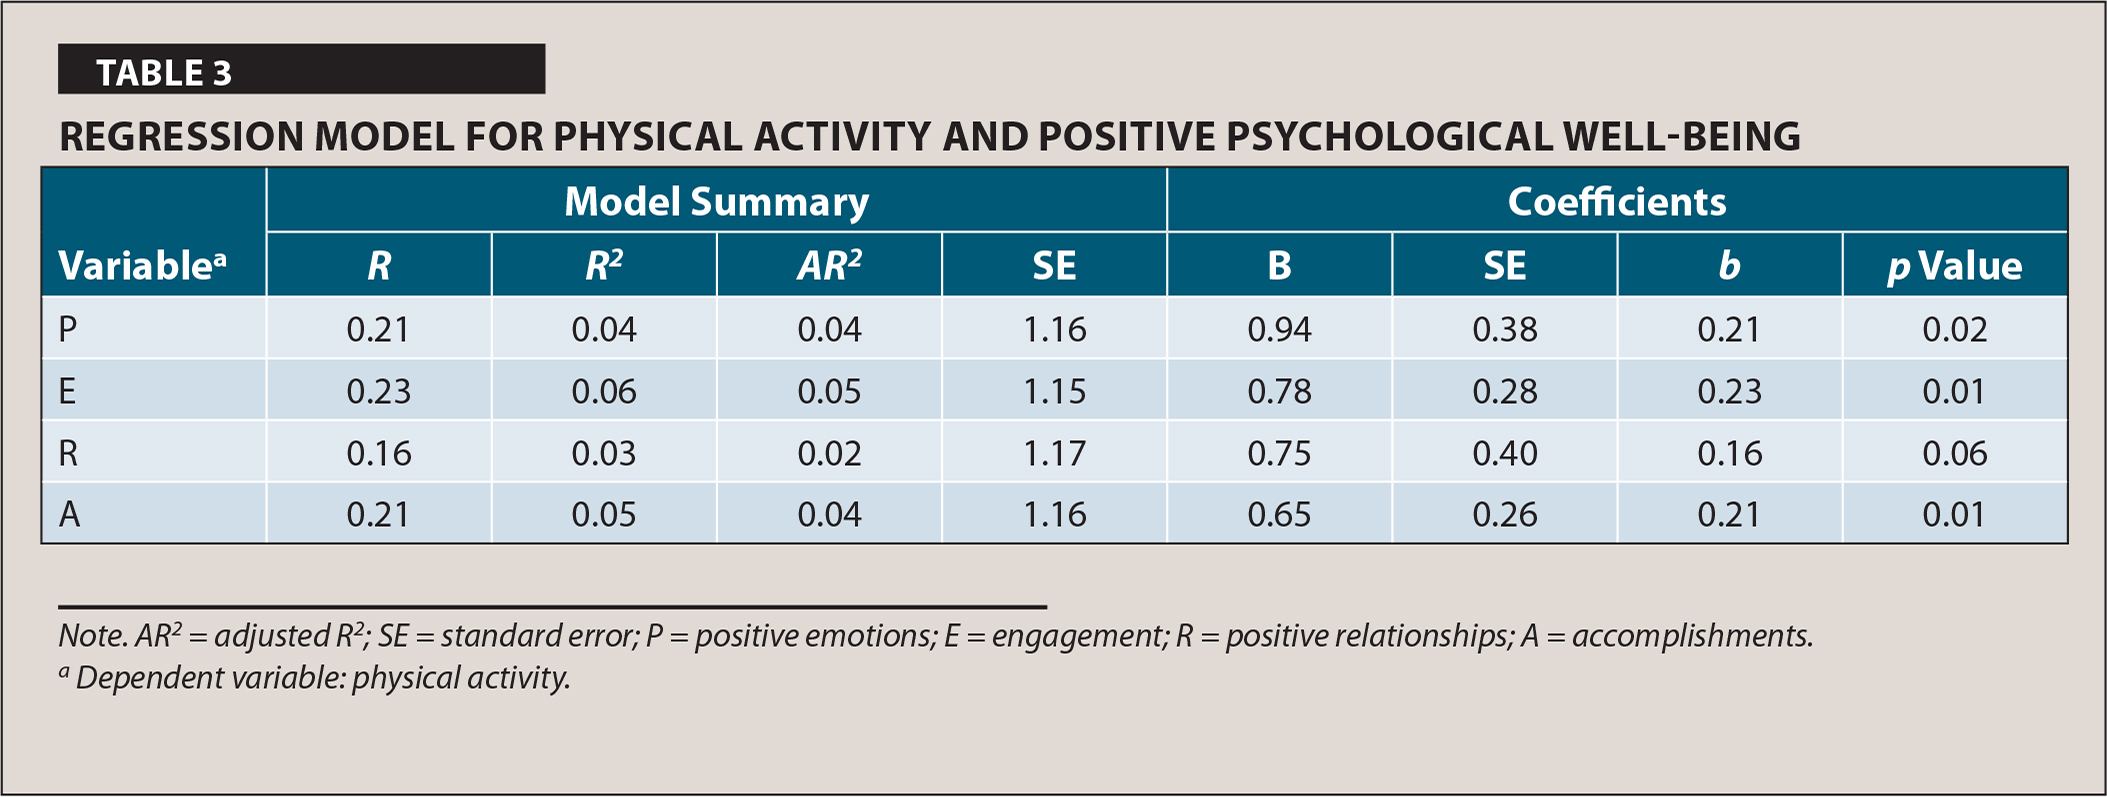 Regression Model for Physical Activity and Positive Psychological Well-Being